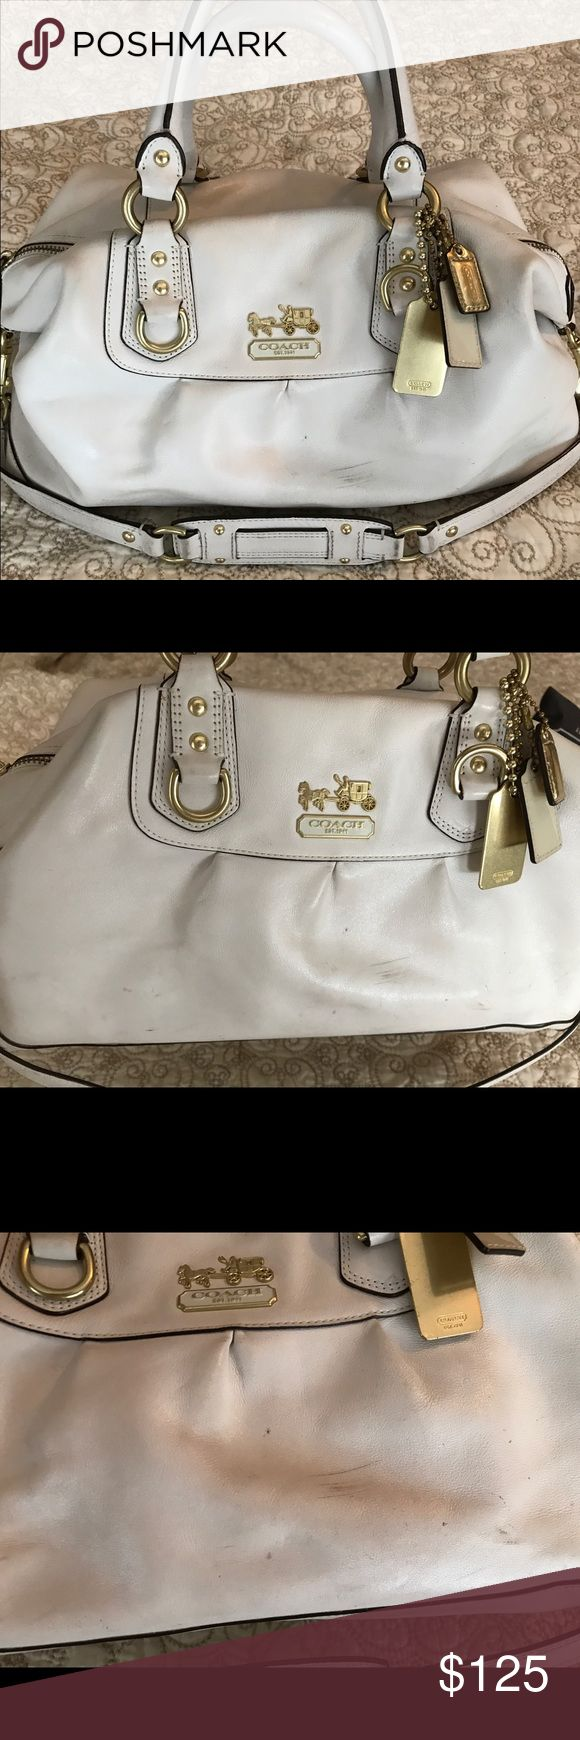 White Coach hobo bag. Good condition. Good condition white Coach hobo bag. Small scratches on front of bag. Lining in good condition with slight discoloration. Slight discoloration on back of bag. Discoloration can probably be removed with cleaning. Coach Bags Hobos